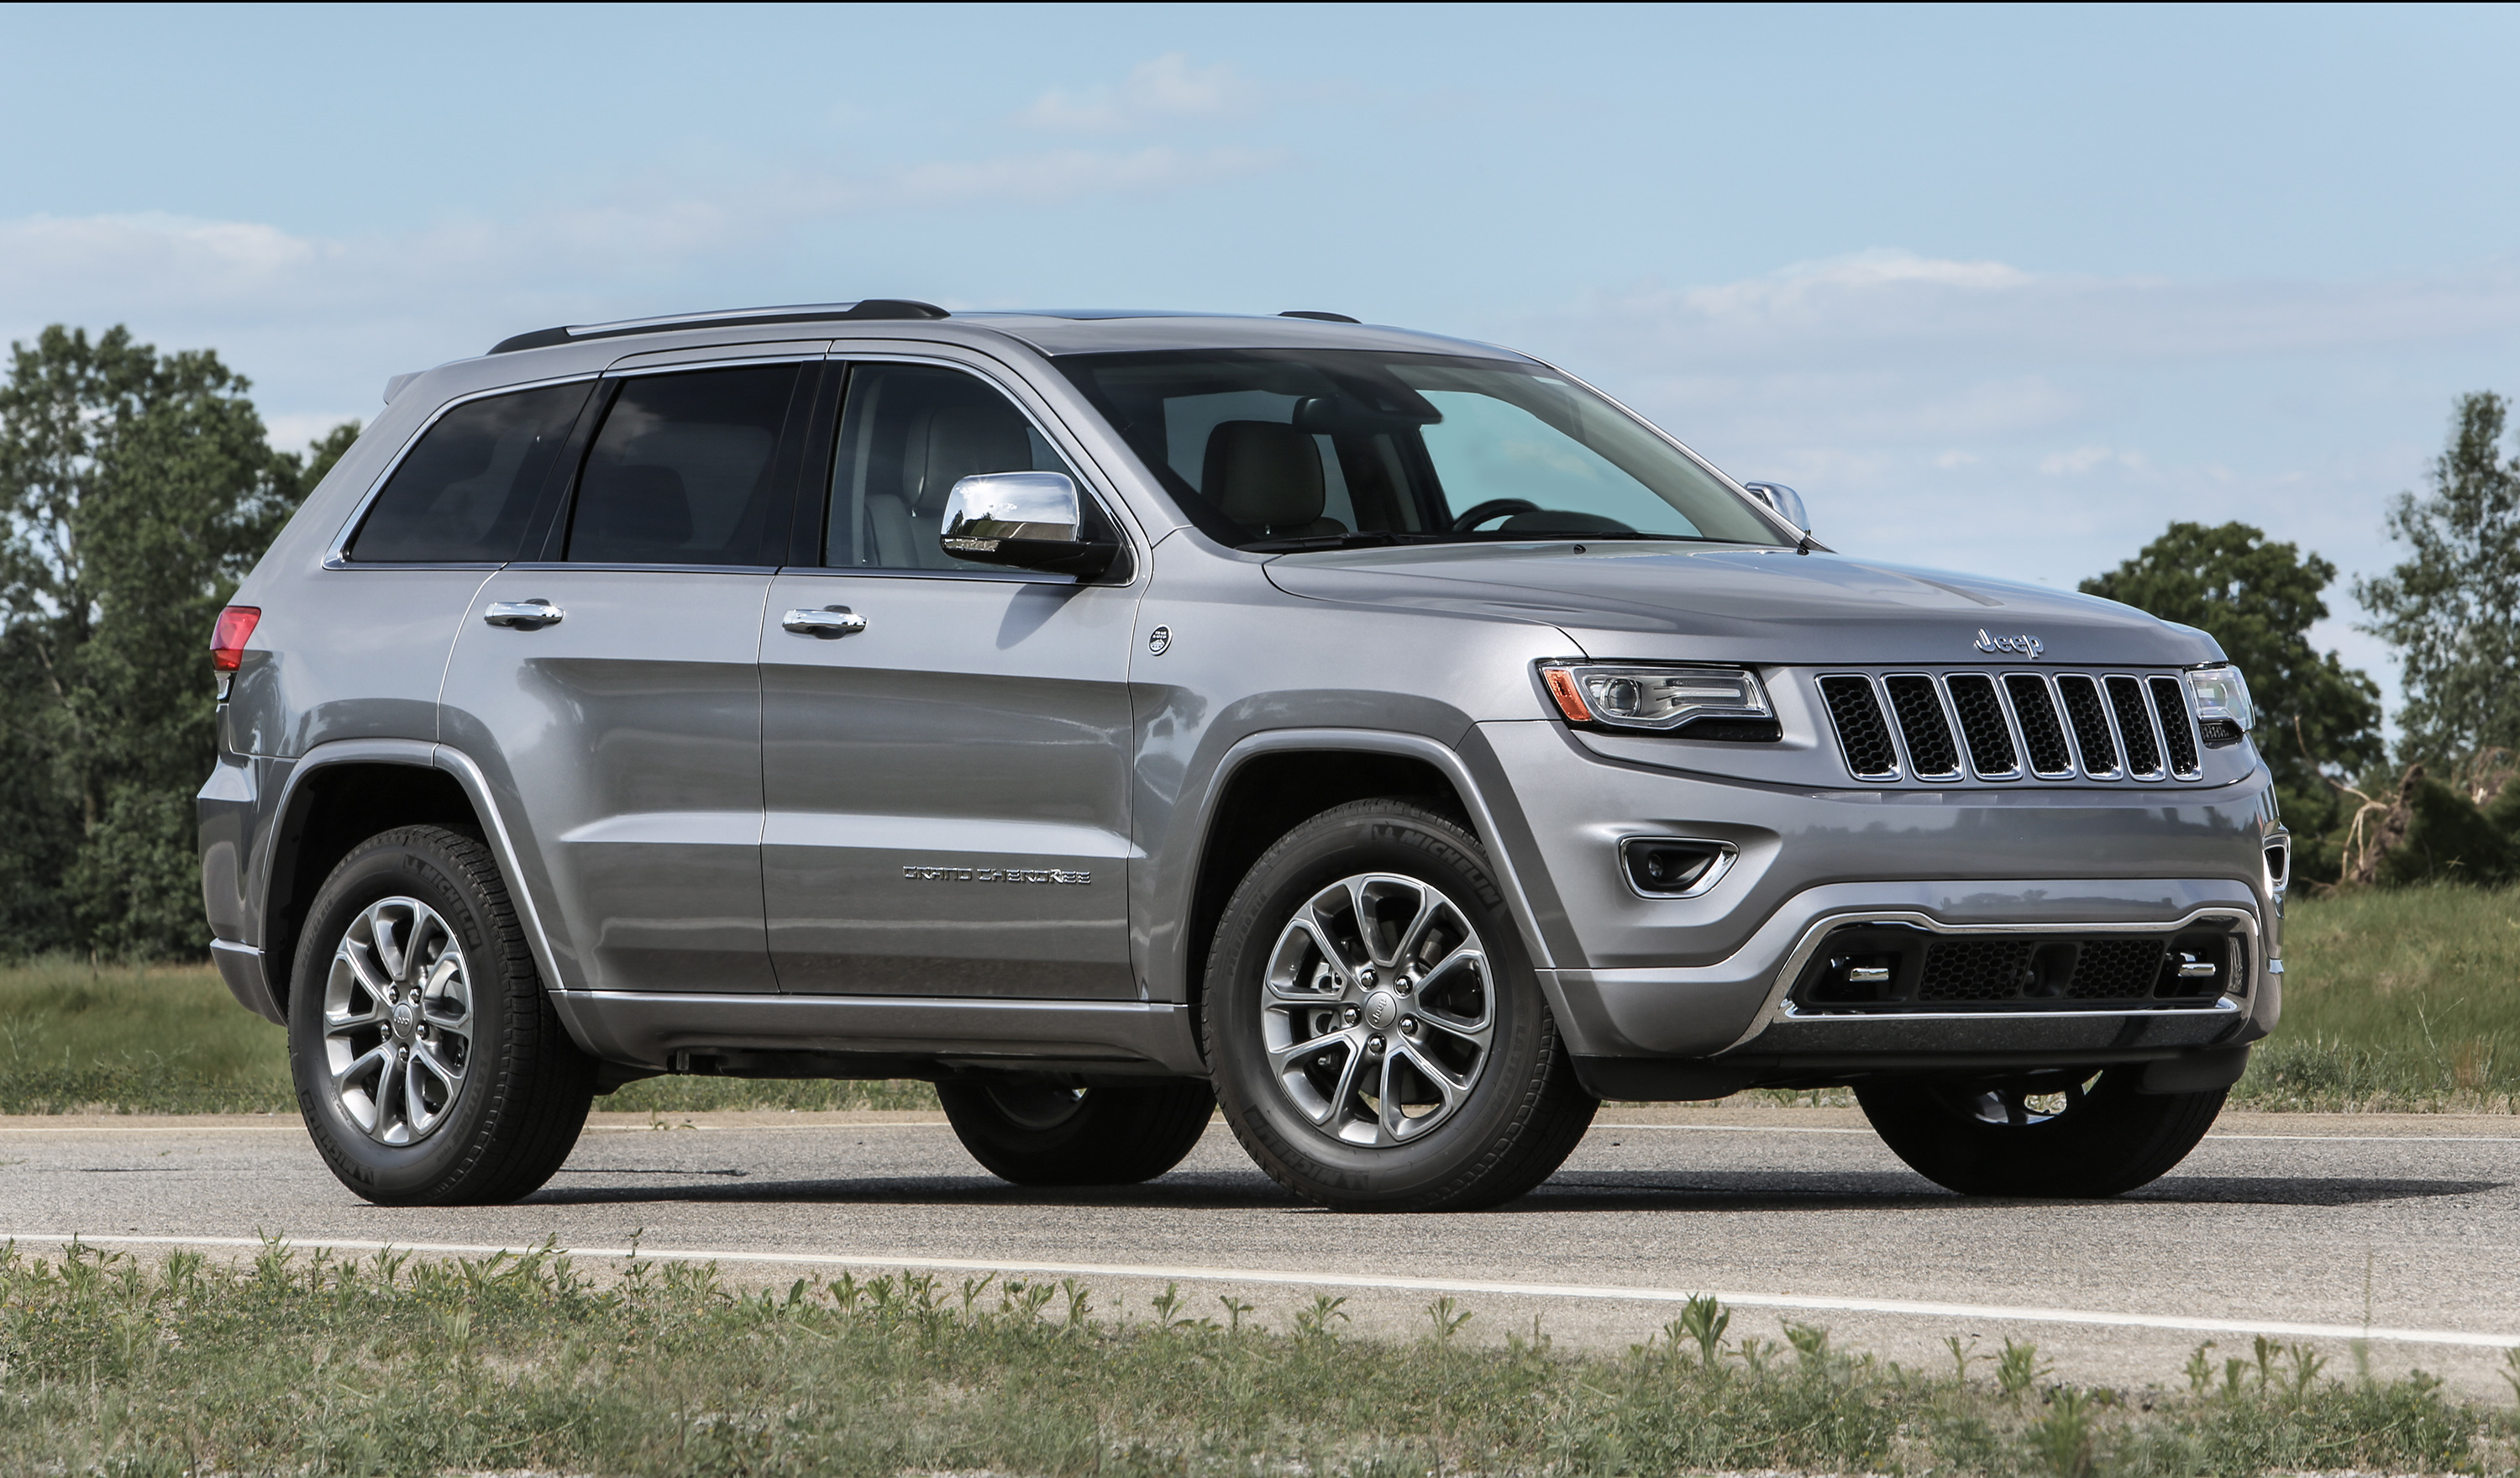 2016 jeep grand cherokee and grand cherokee srt. Black Bedroom Furniture Sets. Home Design Ideas